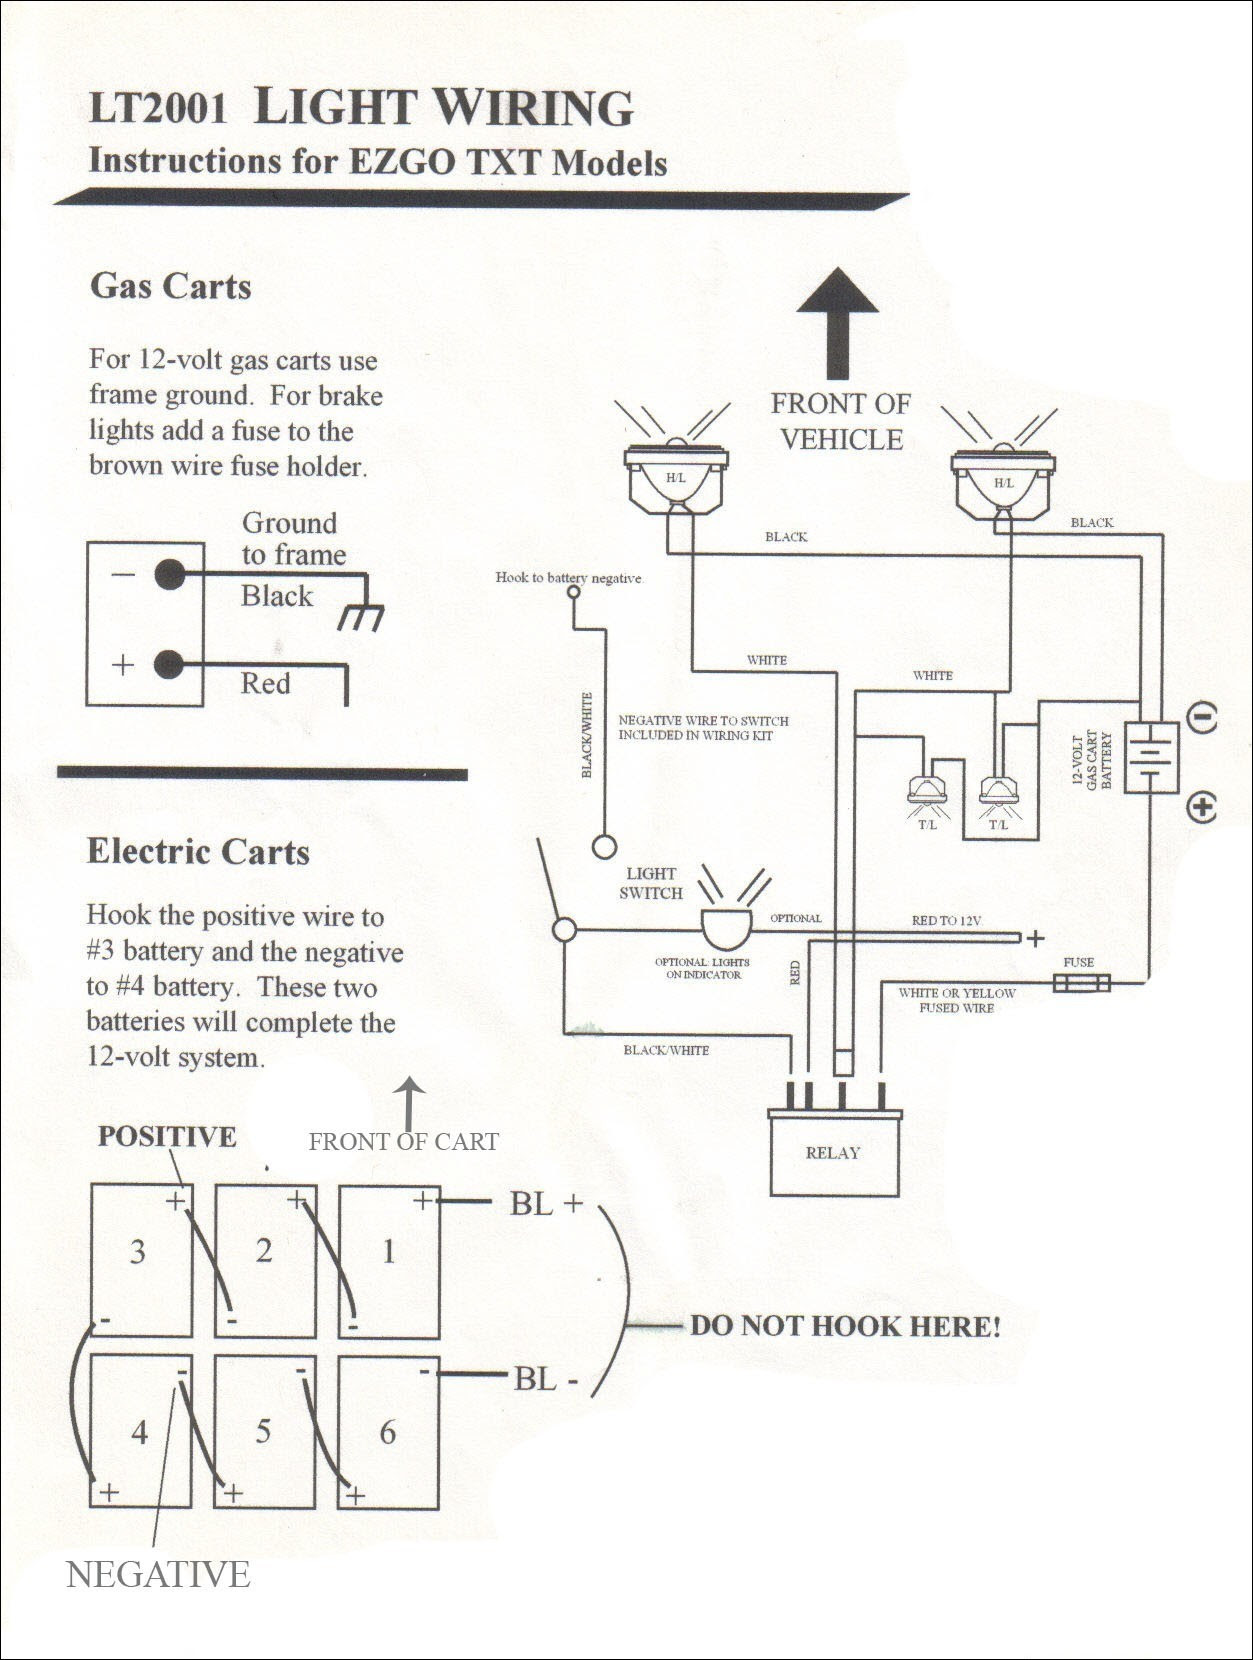 36 Volt Ez Go Gas Golf Cart Wiring Diagram Pdf from lh3.googleusercontent.com